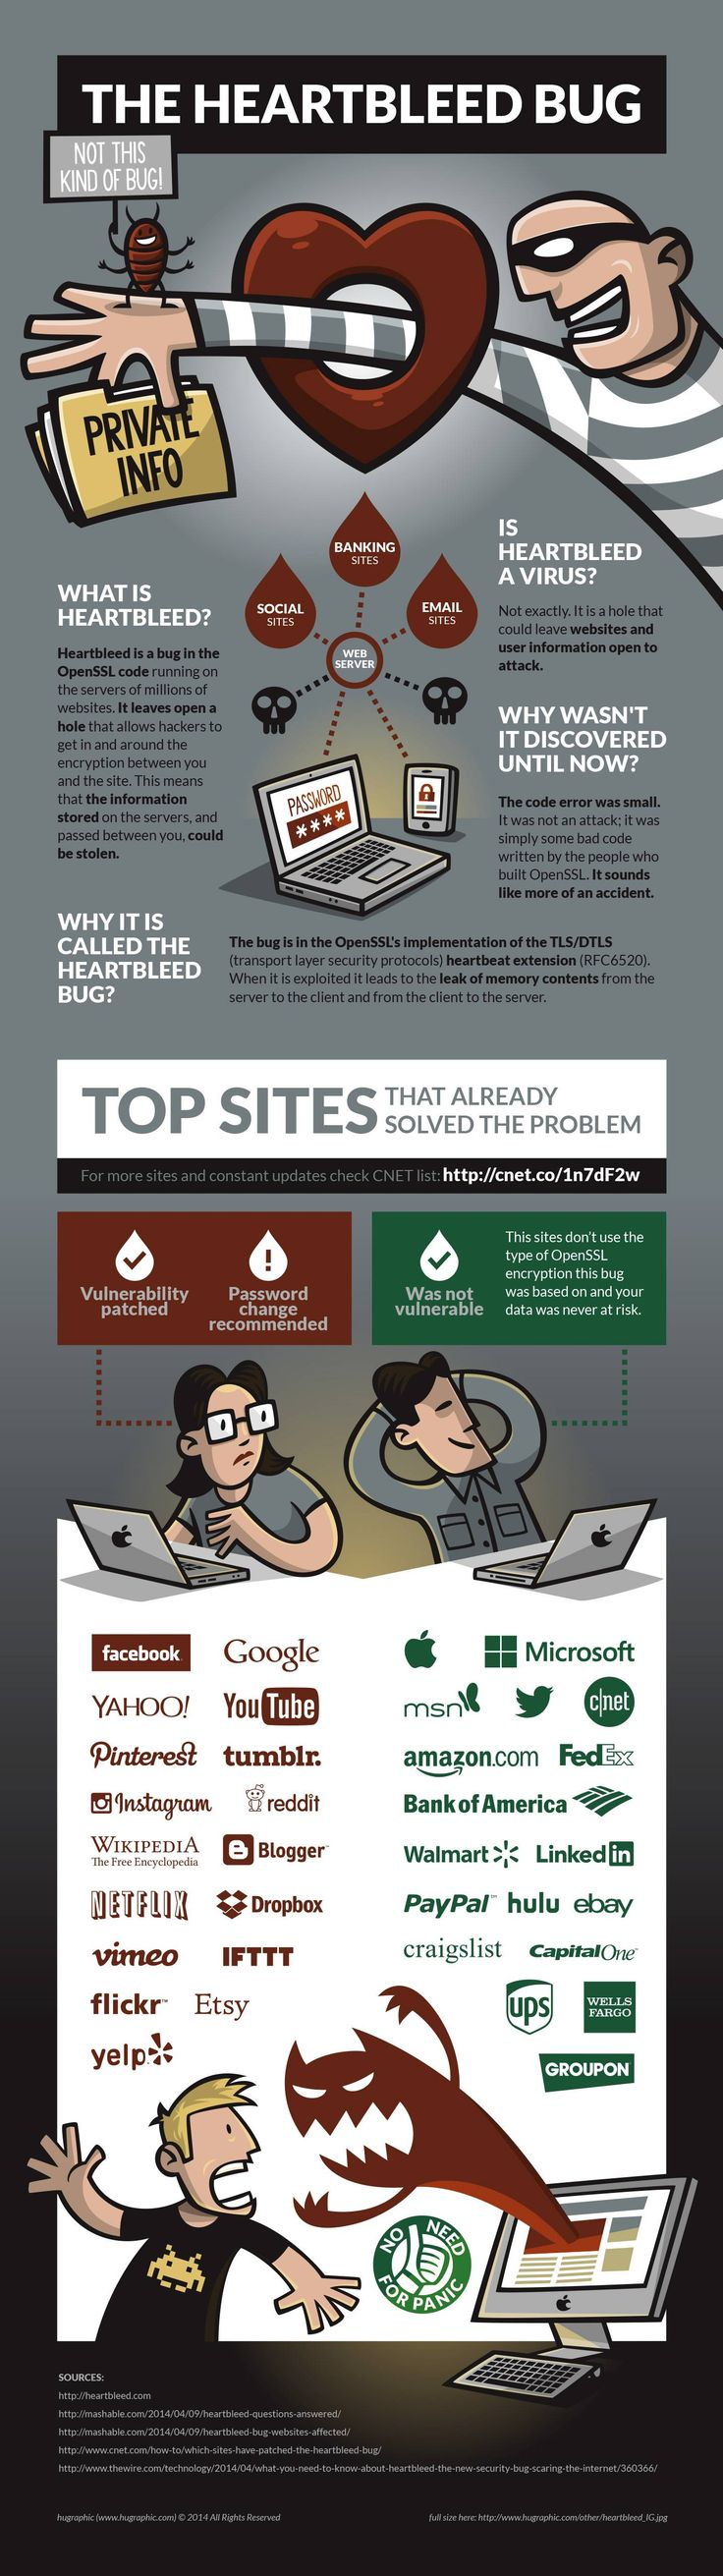 Excellent infographic explaining HeartBleed, with a list of recommended password changes.